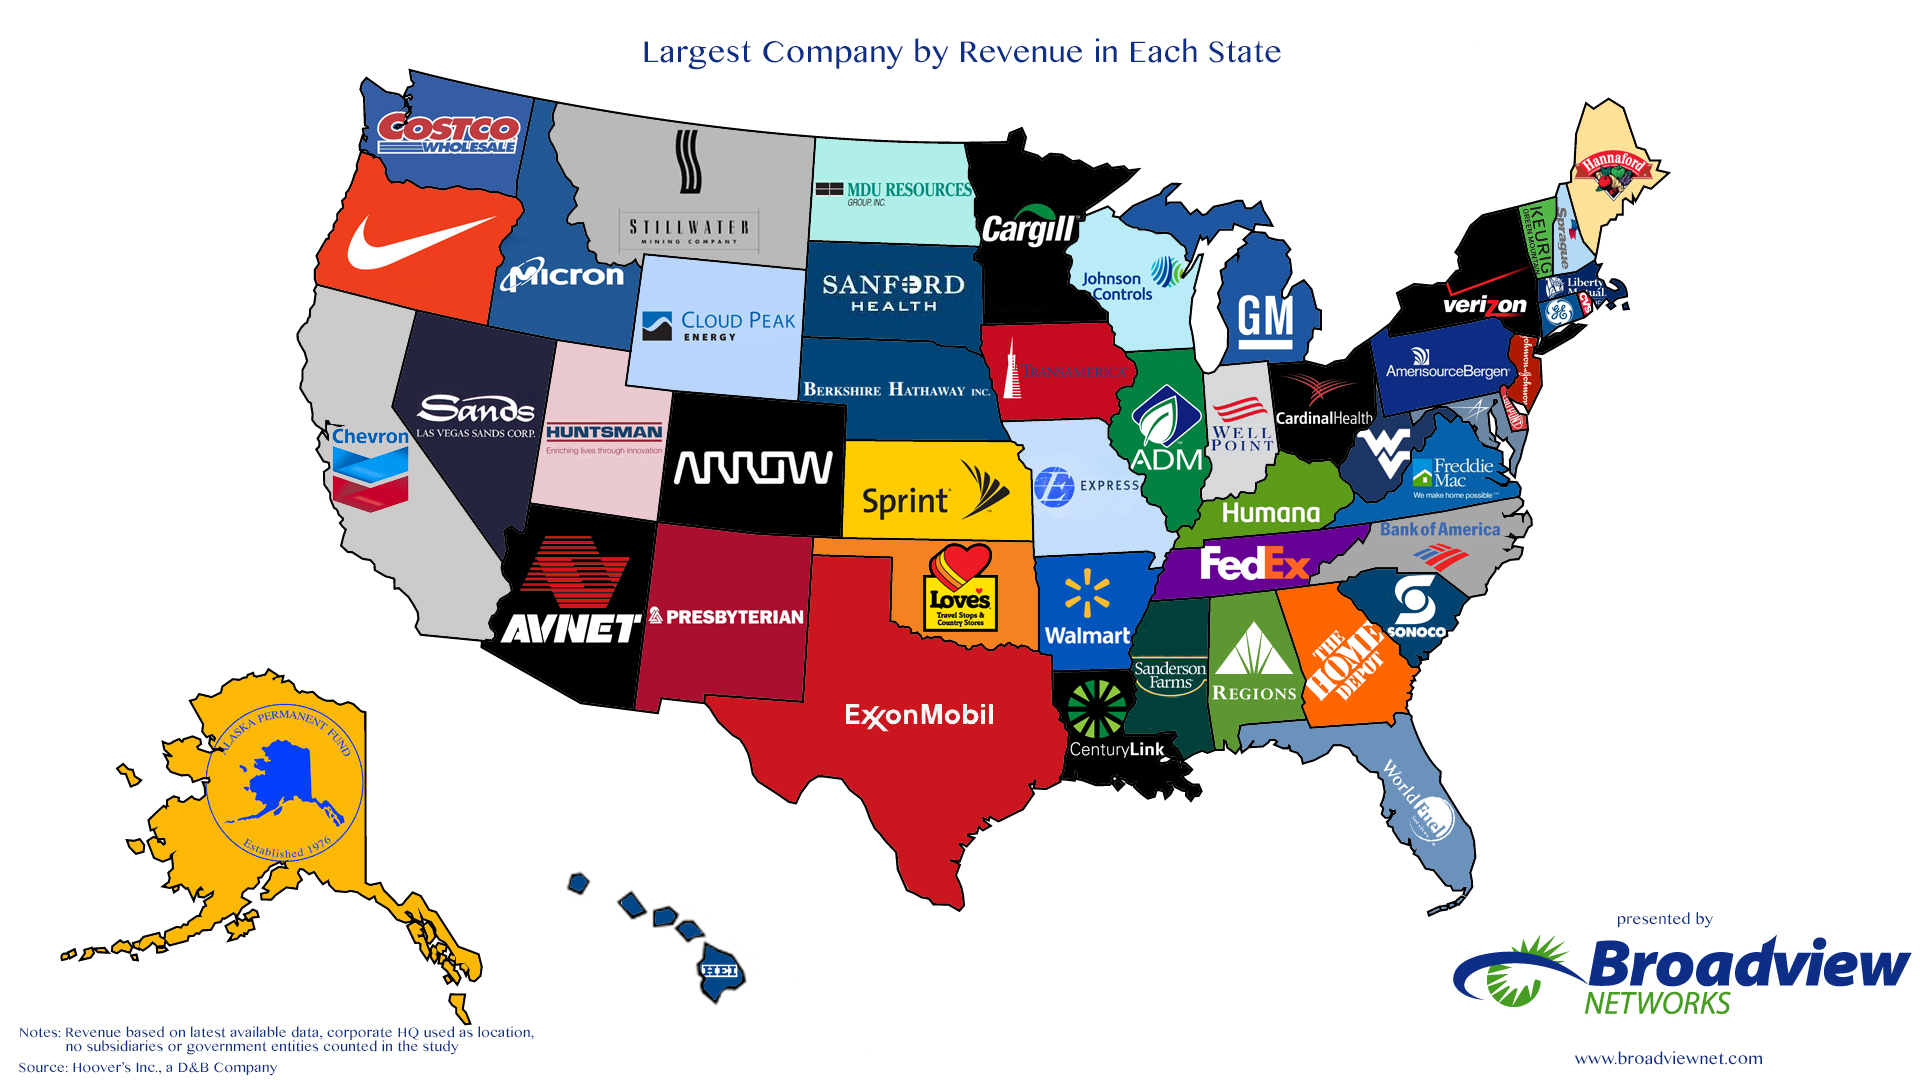 Largest-Company-by-Revenue-by-State-2014